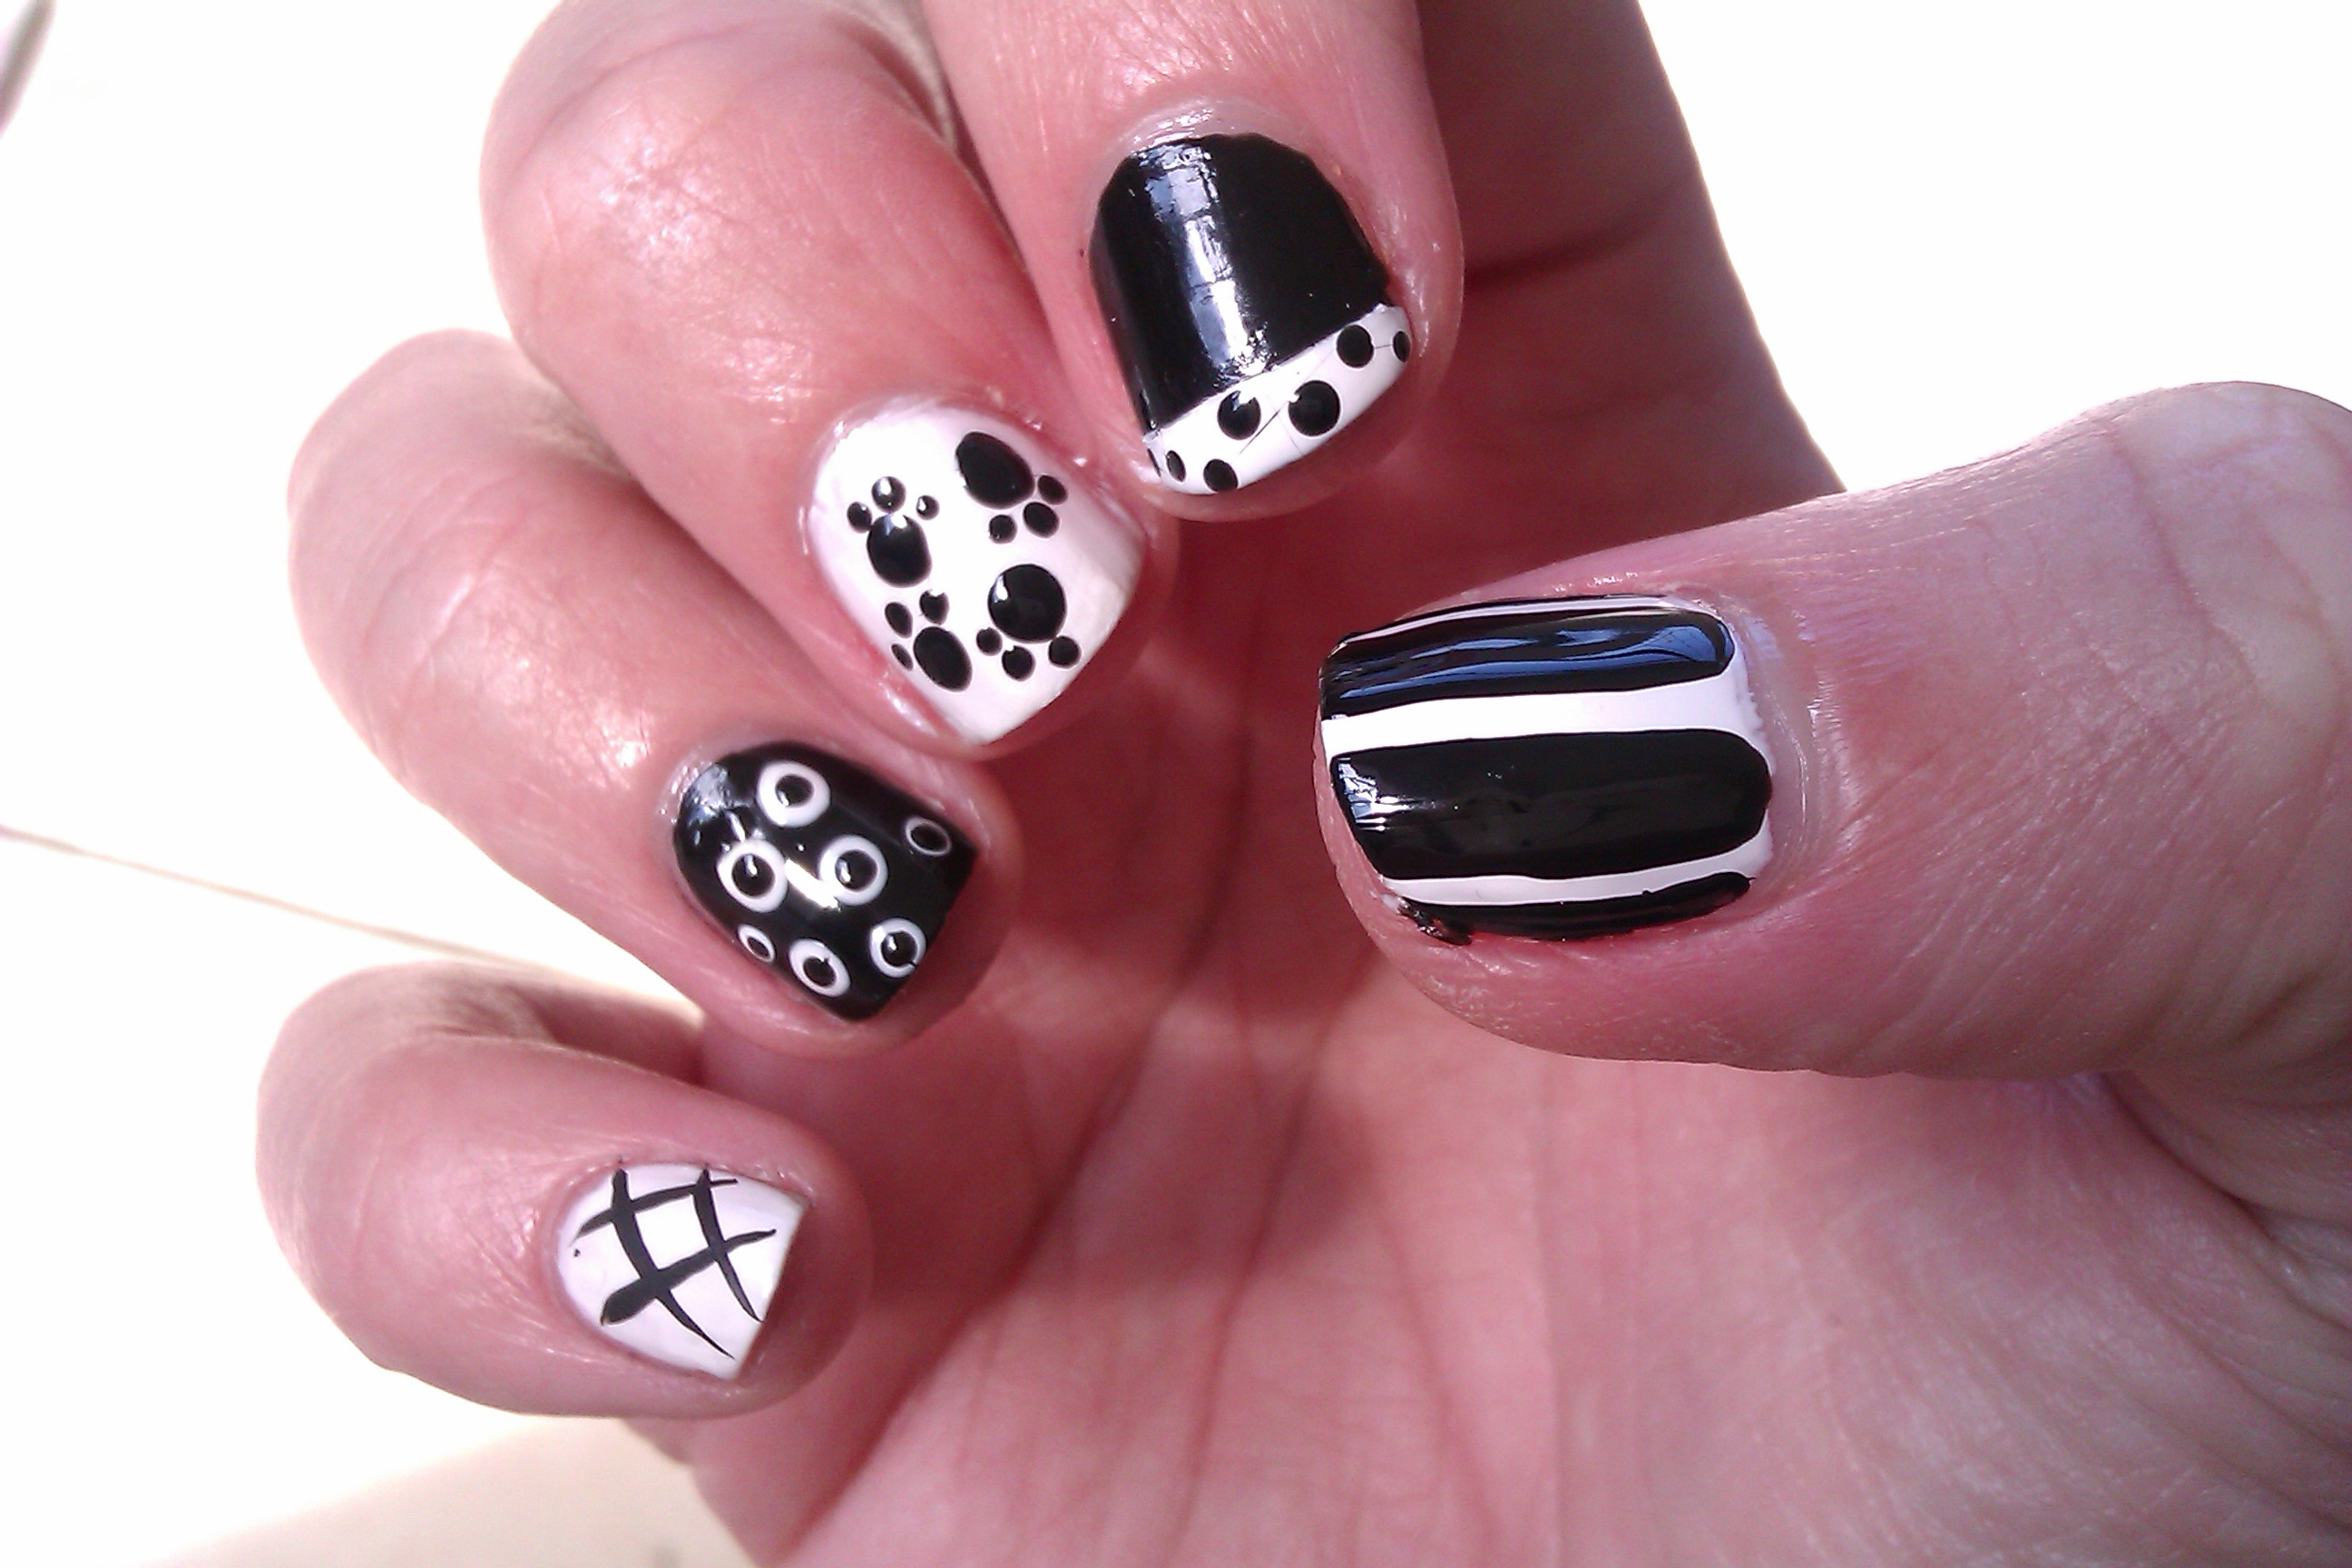 Fancy easy black and white nail designs for short nails 23 according  inspiration articleEasy Black And White Nail Designs For Short Nails   slybury com. Easy At Home Nail Designs For Short Nails. Home Design Ideas